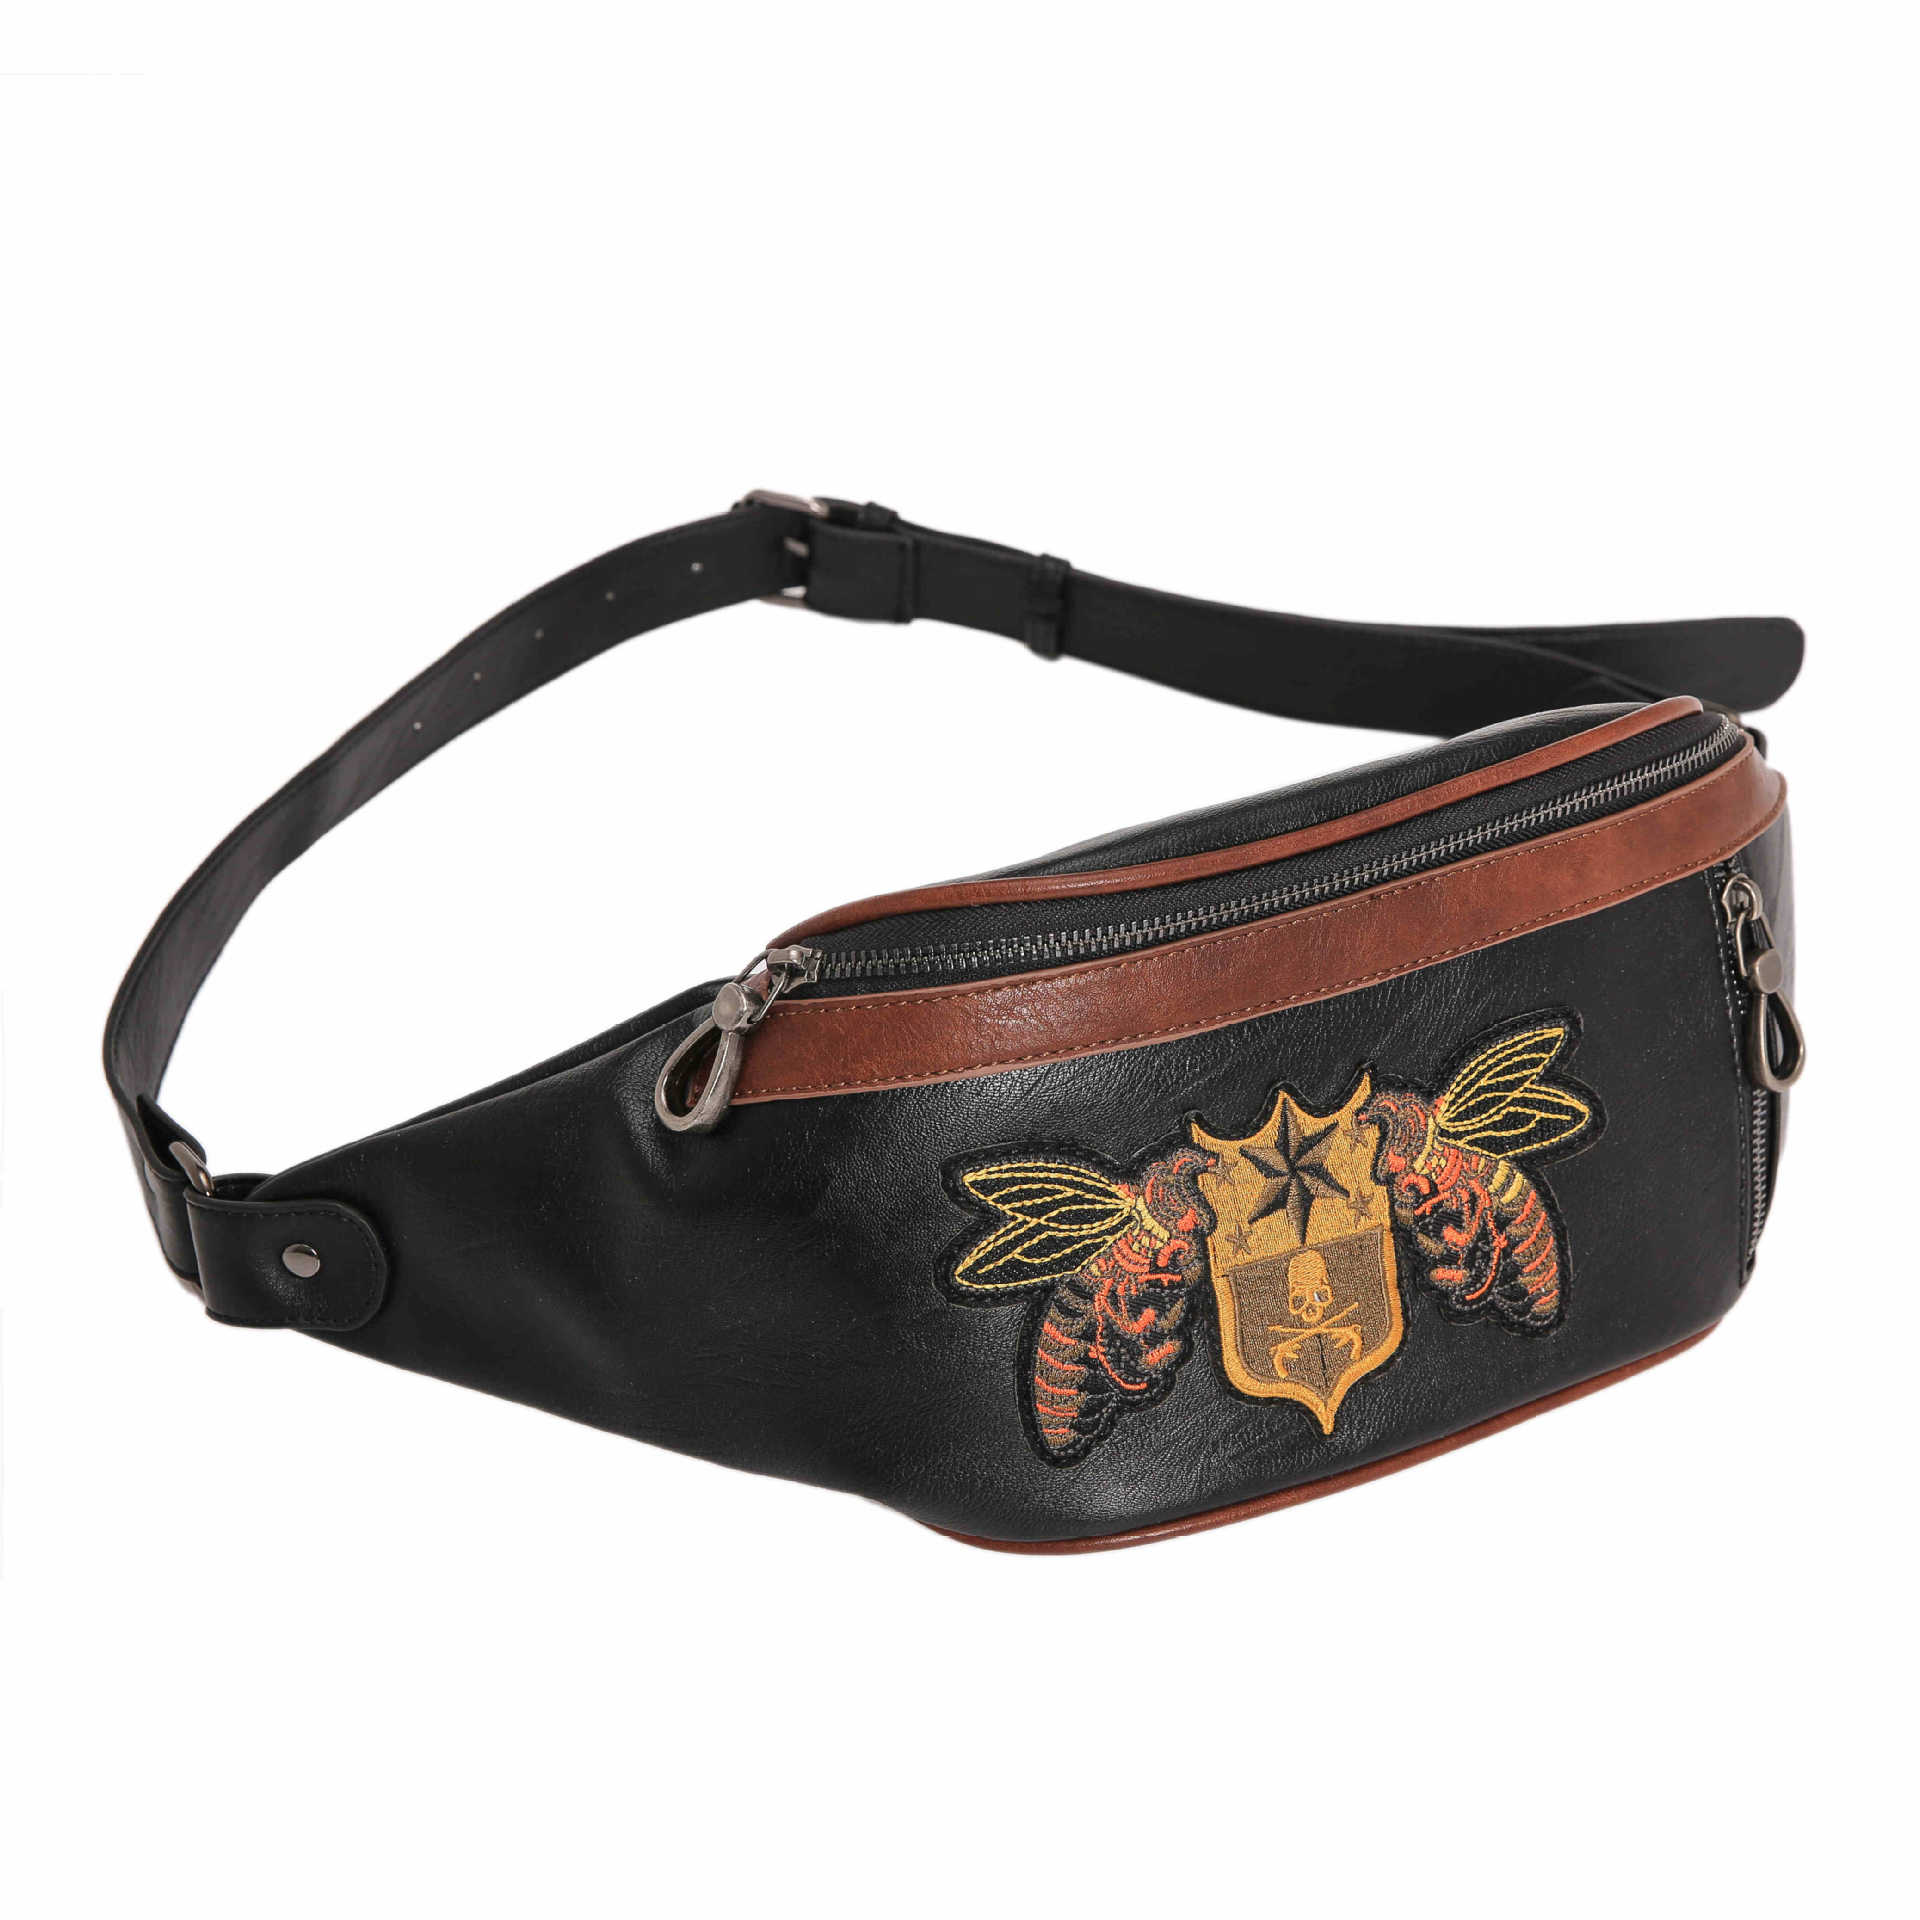 2019 New Embroidery Pattern Chest Bag Fashion Men And Women Street Leather Small Chest Bag Han Version Chest Bag JIULIN